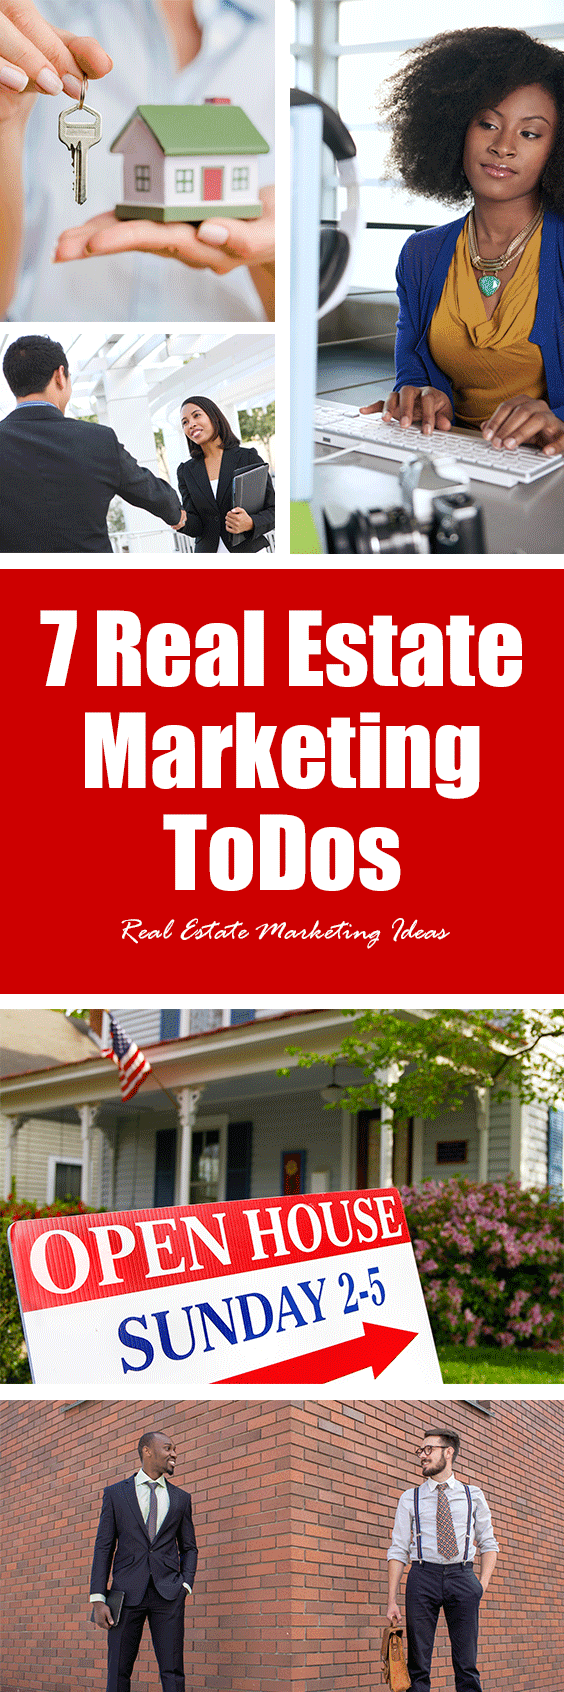 "7 Real Estate Marketing ToDos | Real Estate Marketing Ideas ... Real estate marketing is full of ""could dos"" and ""should dos"". In fact there are a BUNCH of different things that you could do, but which will work best for your business (or market)? We work with LOTS of agents and have a good idea of what will work for different situations. With that in mind, here are our top seven real estate marketing ideas (in no particular order). We are not going to include the lame-o Facebook propaganda that you hear from every other marketing ""expert"""